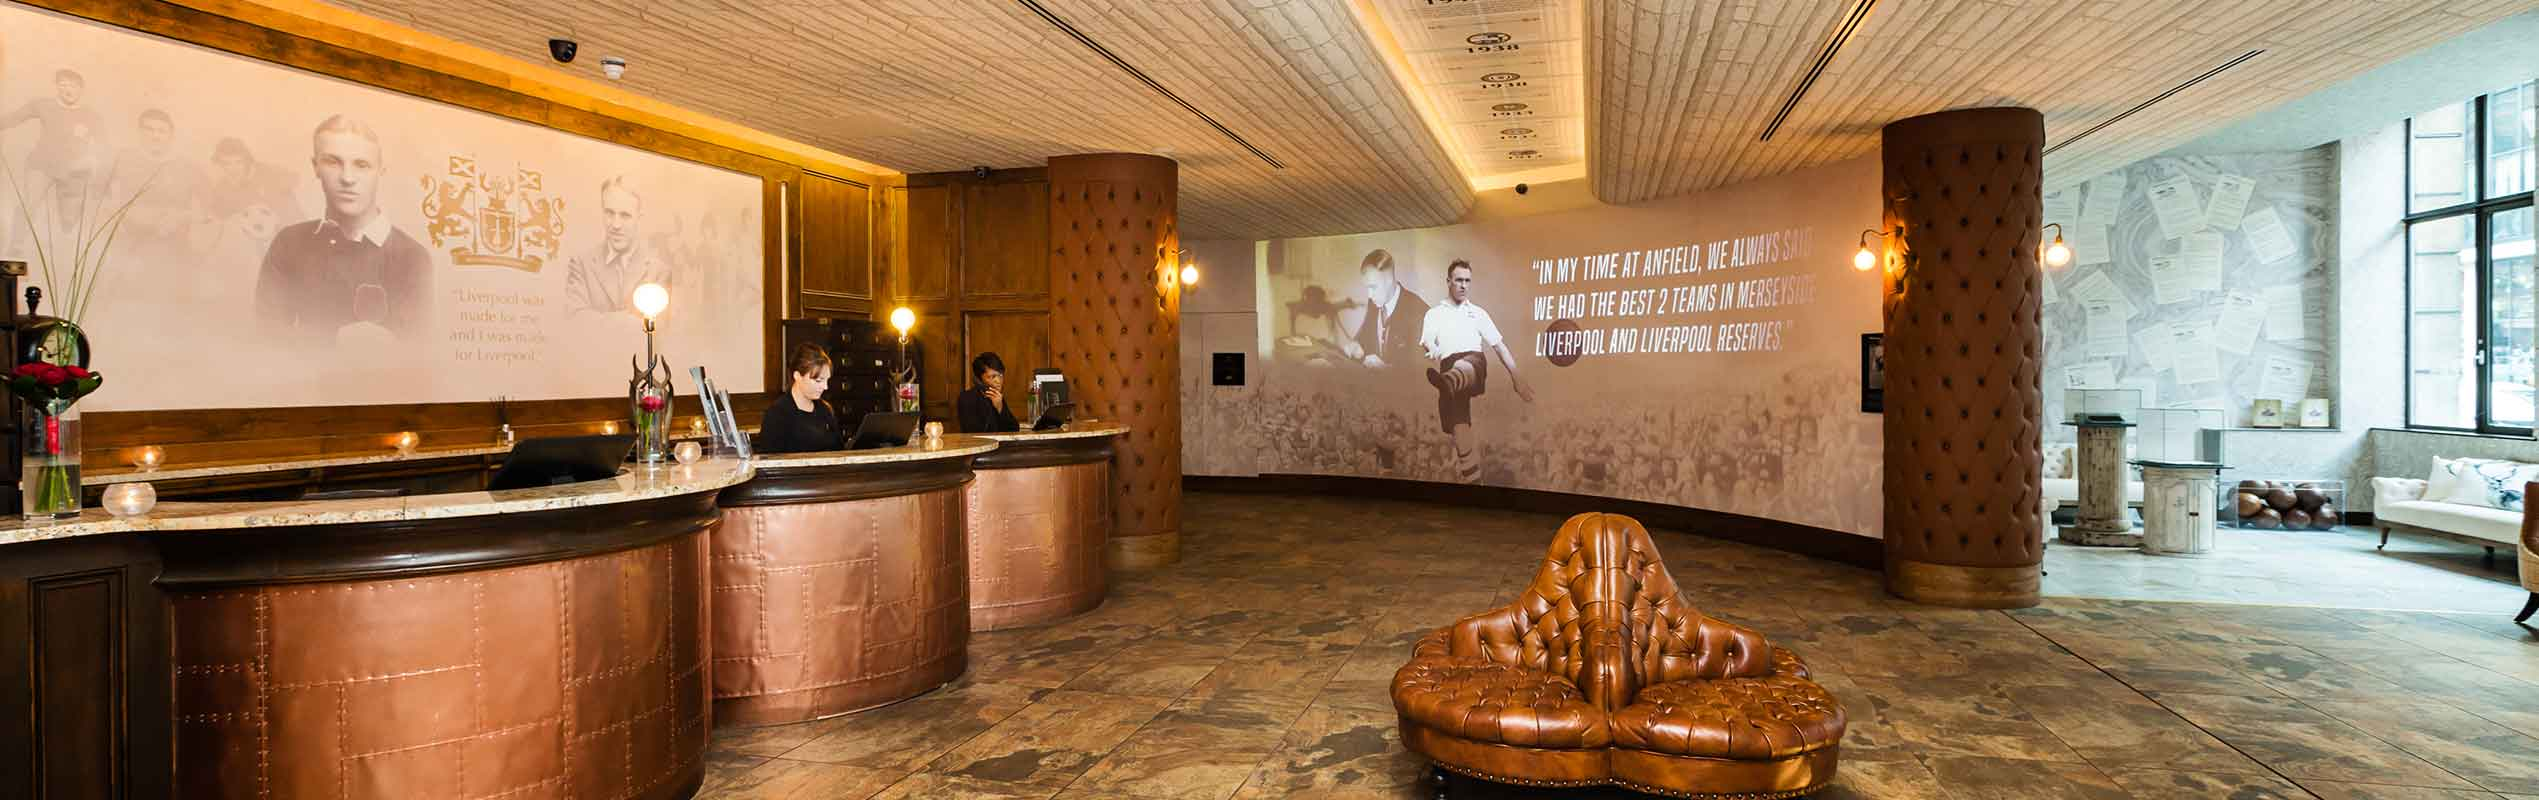 The Shankly Hotel Ascot Property Investments Liverpool